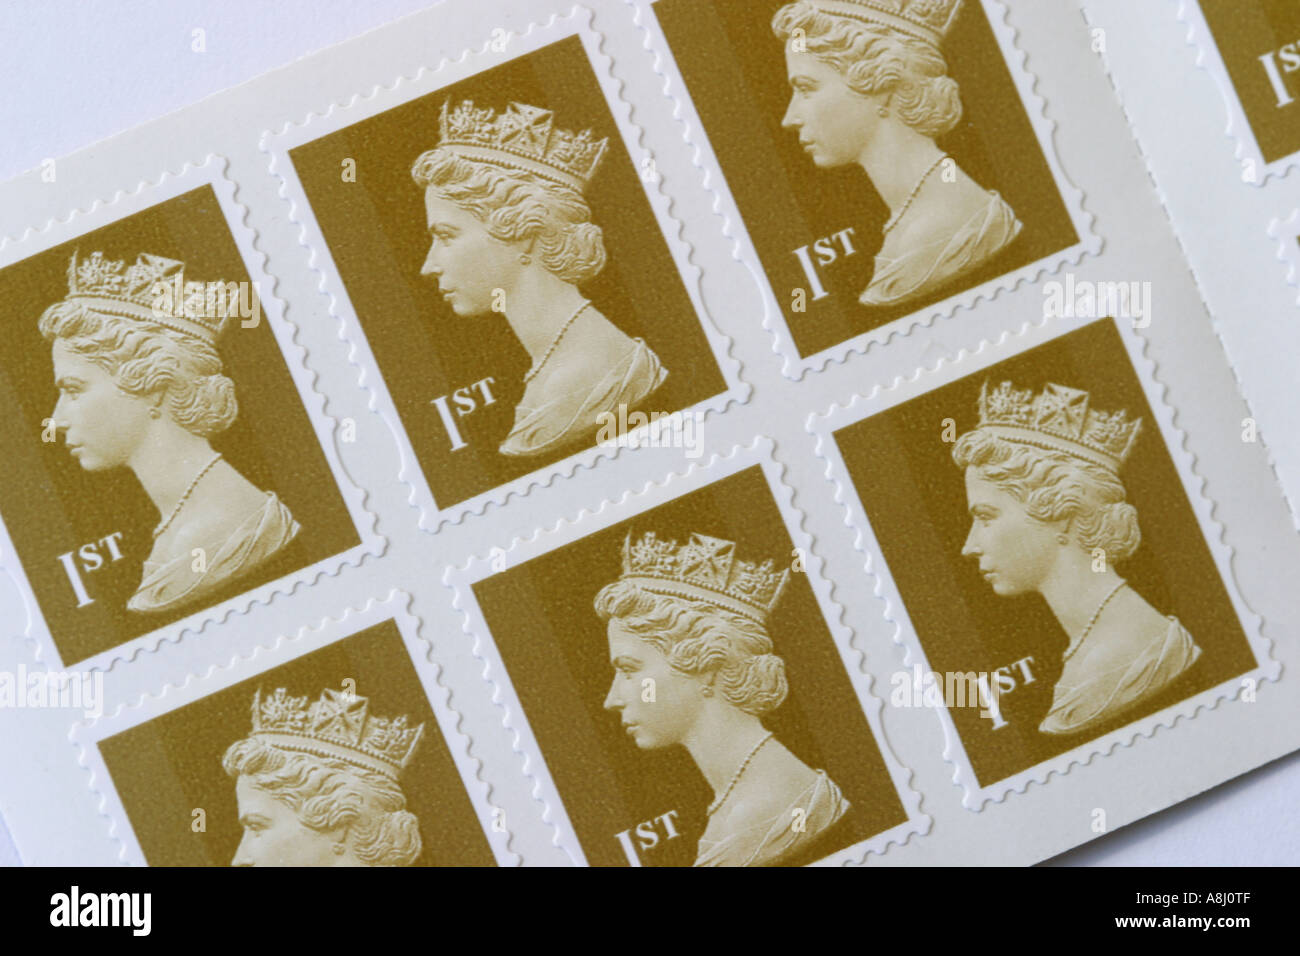 1st Class stamp book of stamps - Stock Image